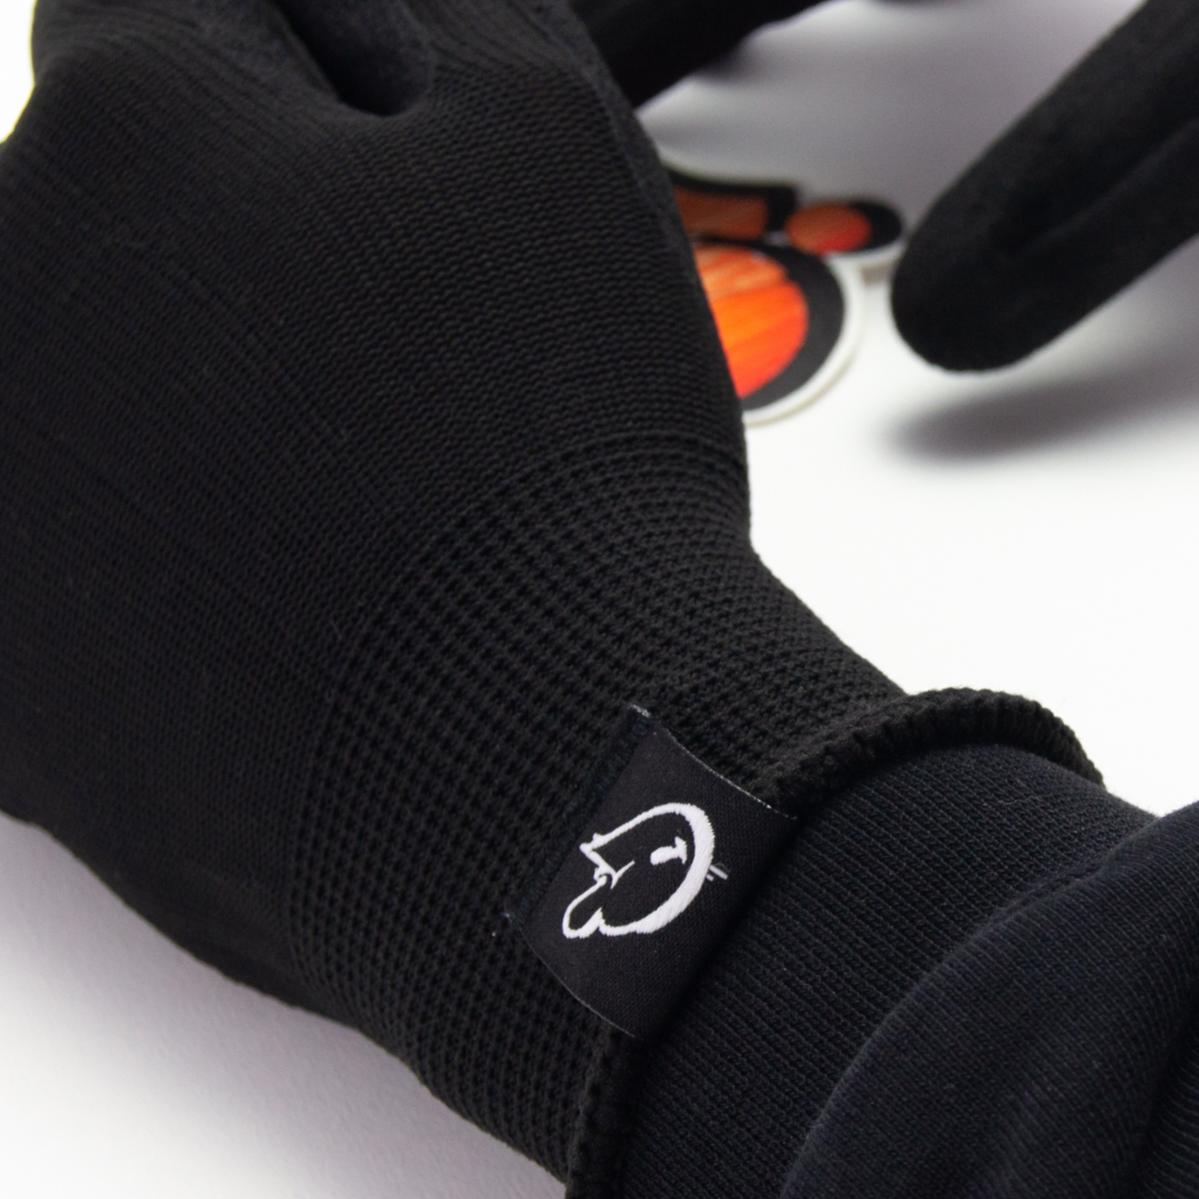 A work by Does - 'DOES' Work Gloves_thumb